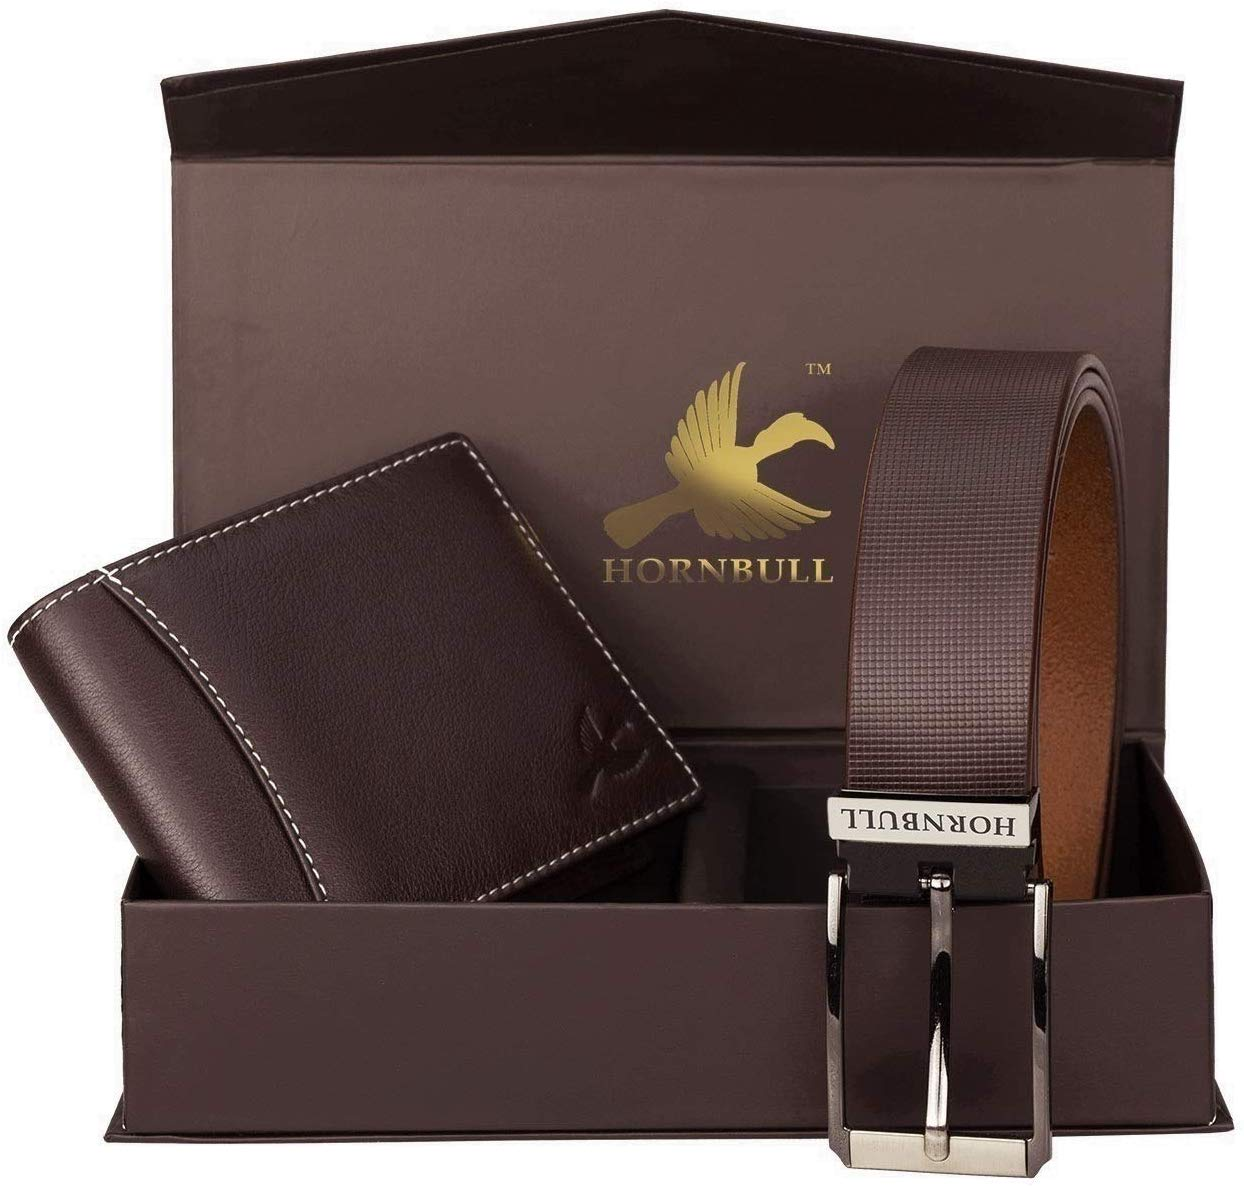 [73% Off] HORNBULL Men's Leather Wallet and Belt Combo At Only Rs. 882